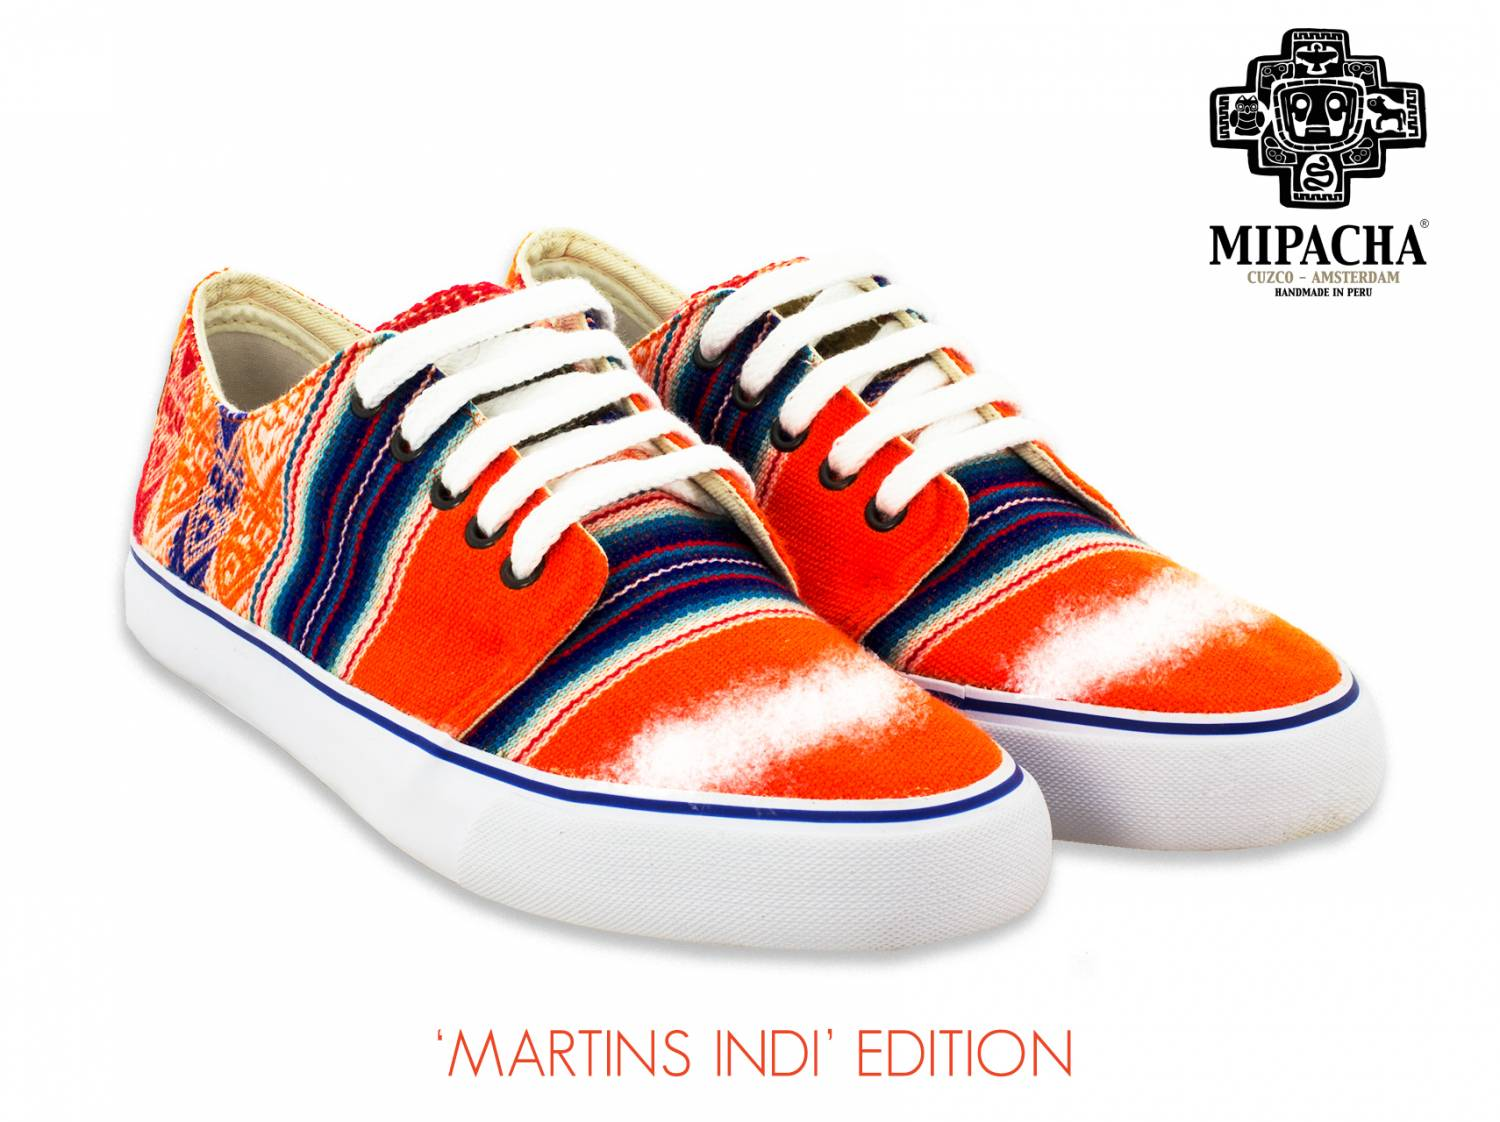 Special 'Bruno Martins Indi' Edition